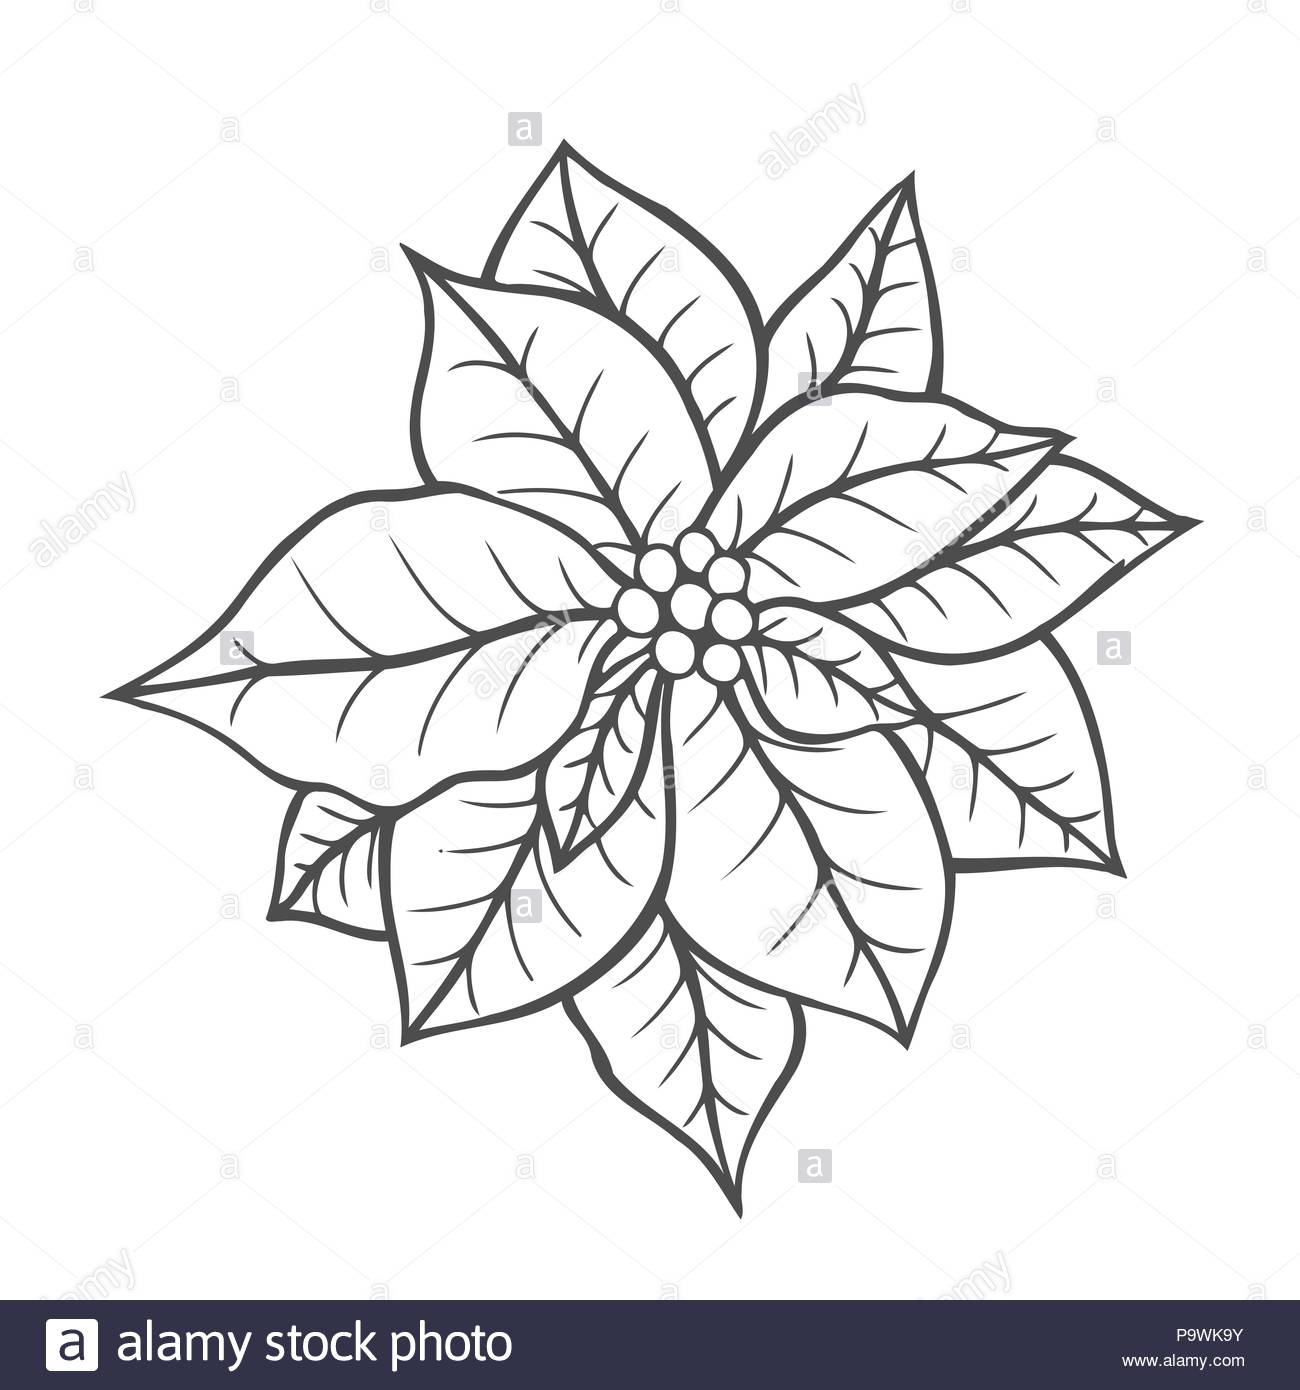 Christmas Coloring Book Vector With Poinsettia Isolated Flower Vintage Artwork Black